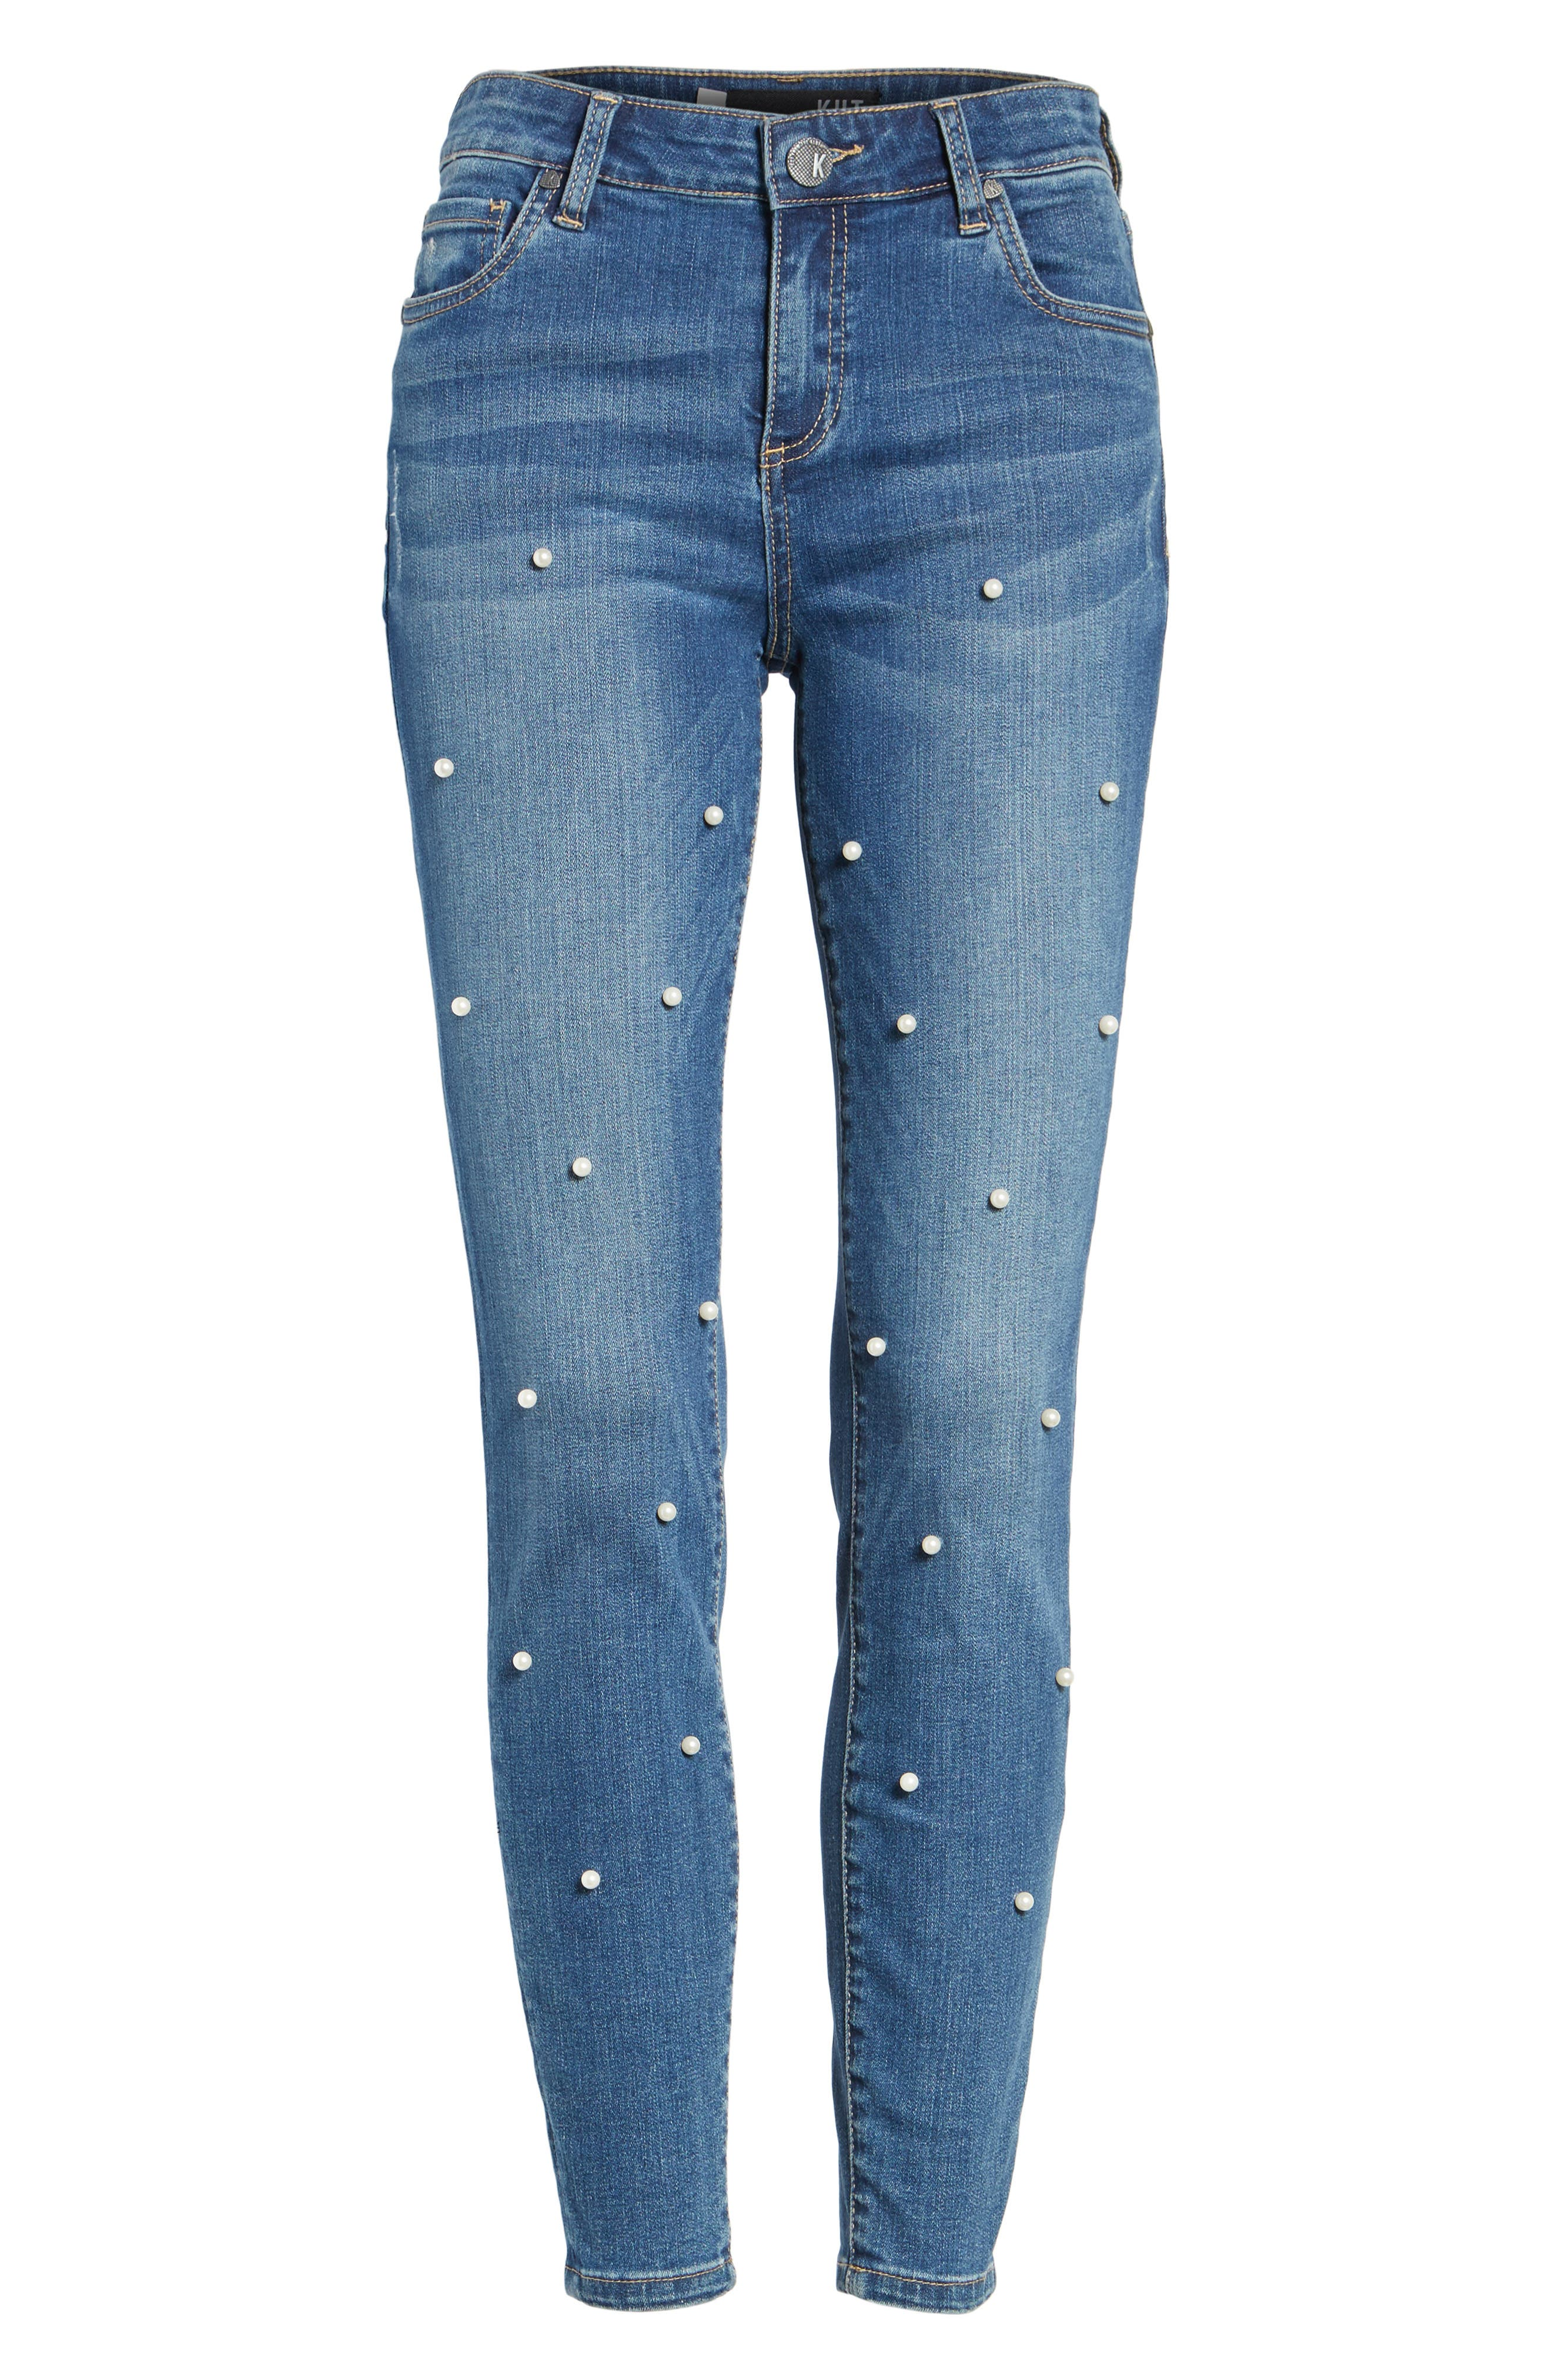 Brigitte Ankle Skinny Jeans,                             Alternate thumbnail 7, color,                             Bewitching/ Dark Stone